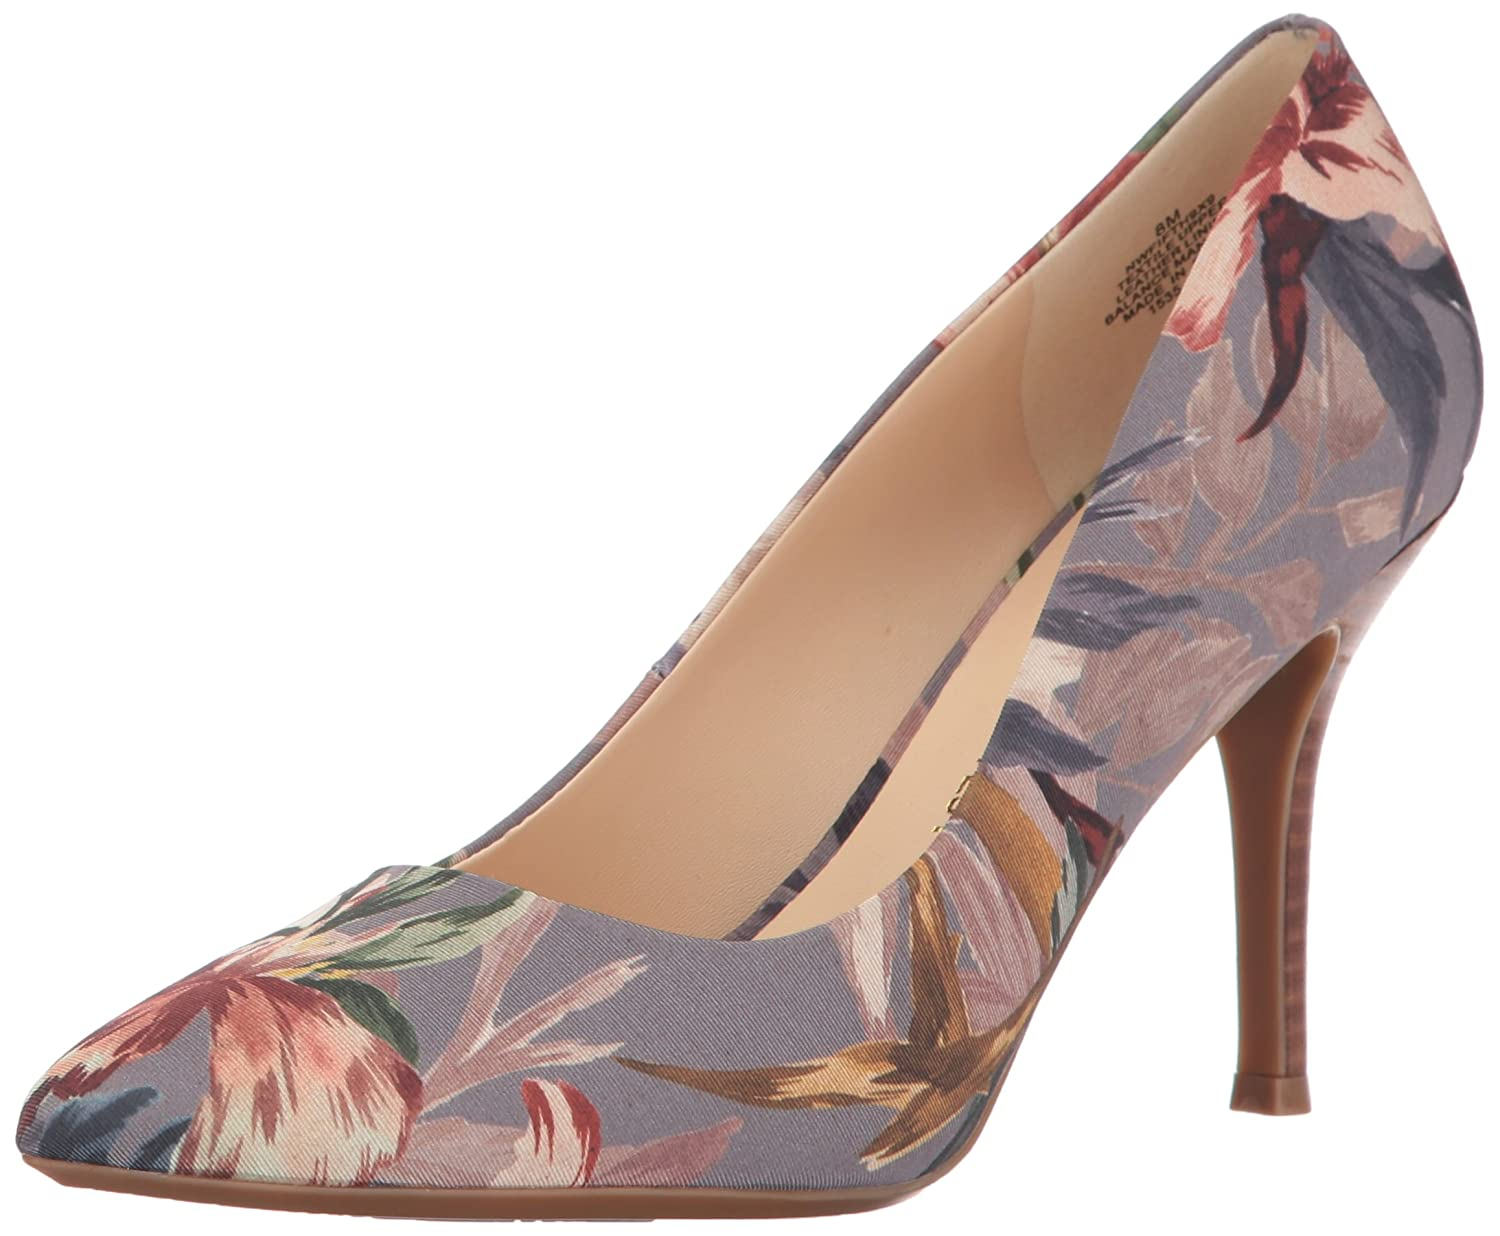 Nine West Women's FIFTH9X Fifth Pointy Toe Pumps B01N2PCLF2 8 B(M) US Taupe Multi Fabric